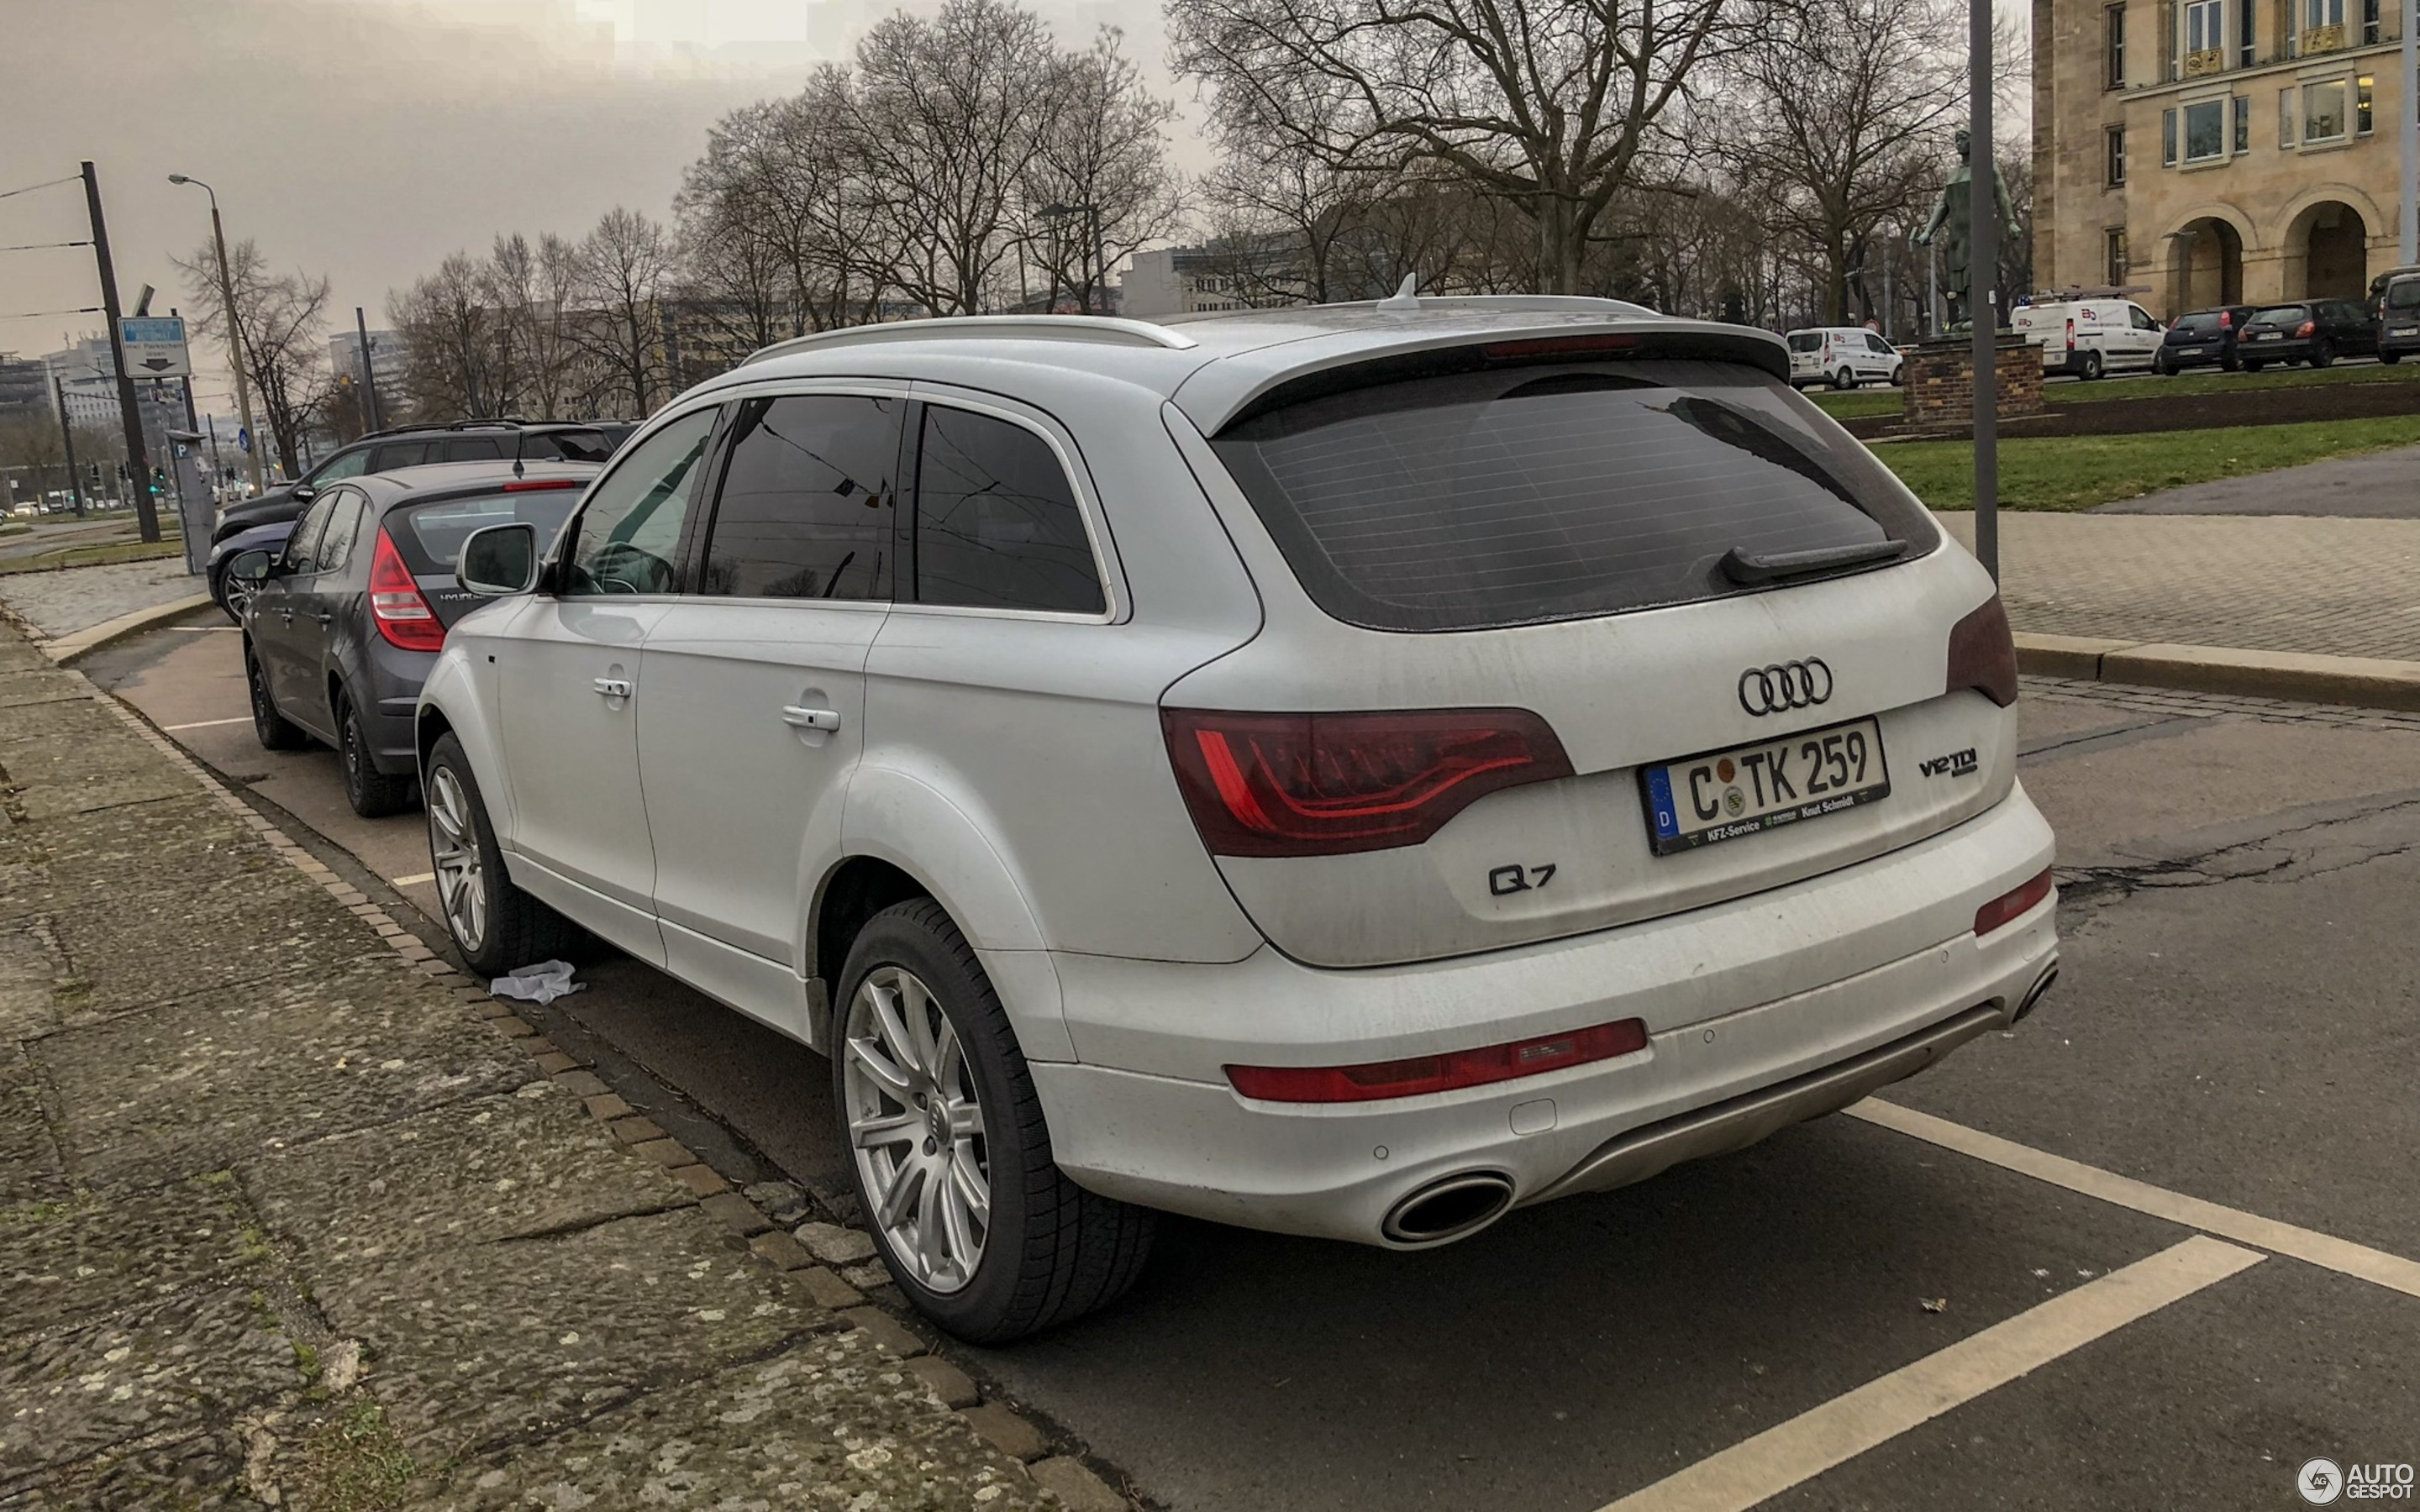 costs how parkers to it audi suv mpg insure running review much is